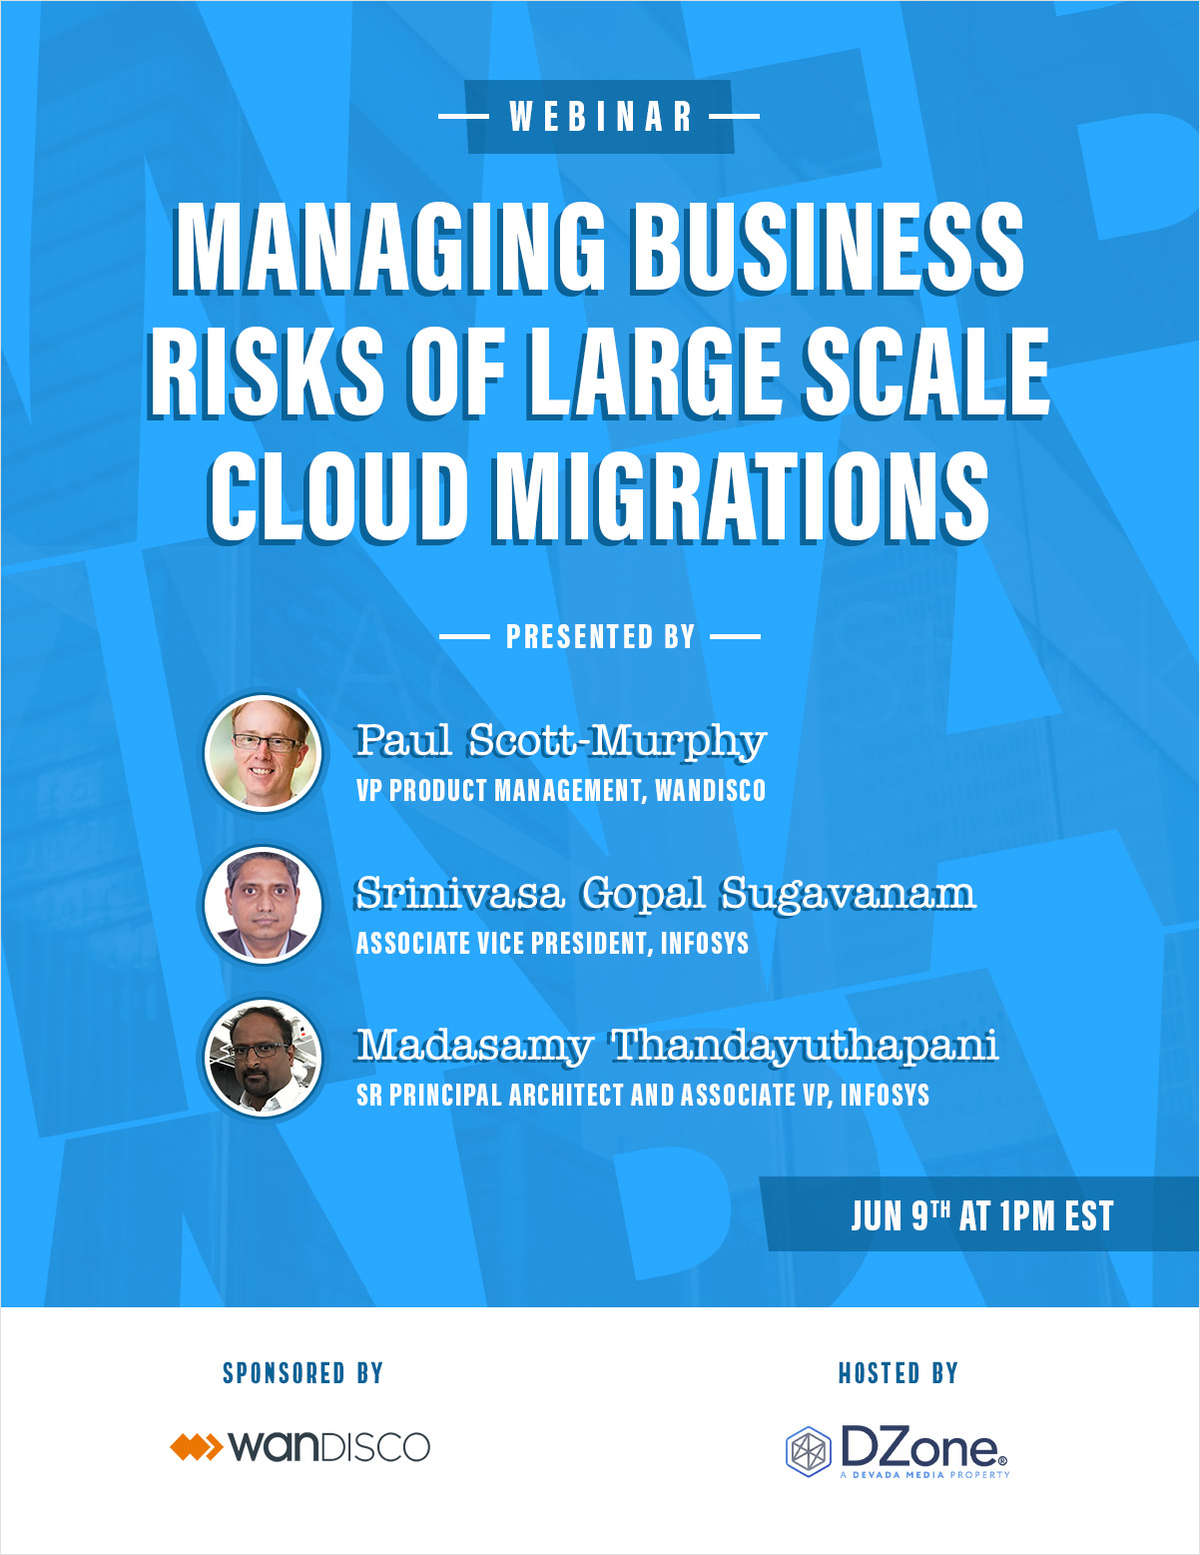 Managing Business Risks of Large Scale Cloud Migrations